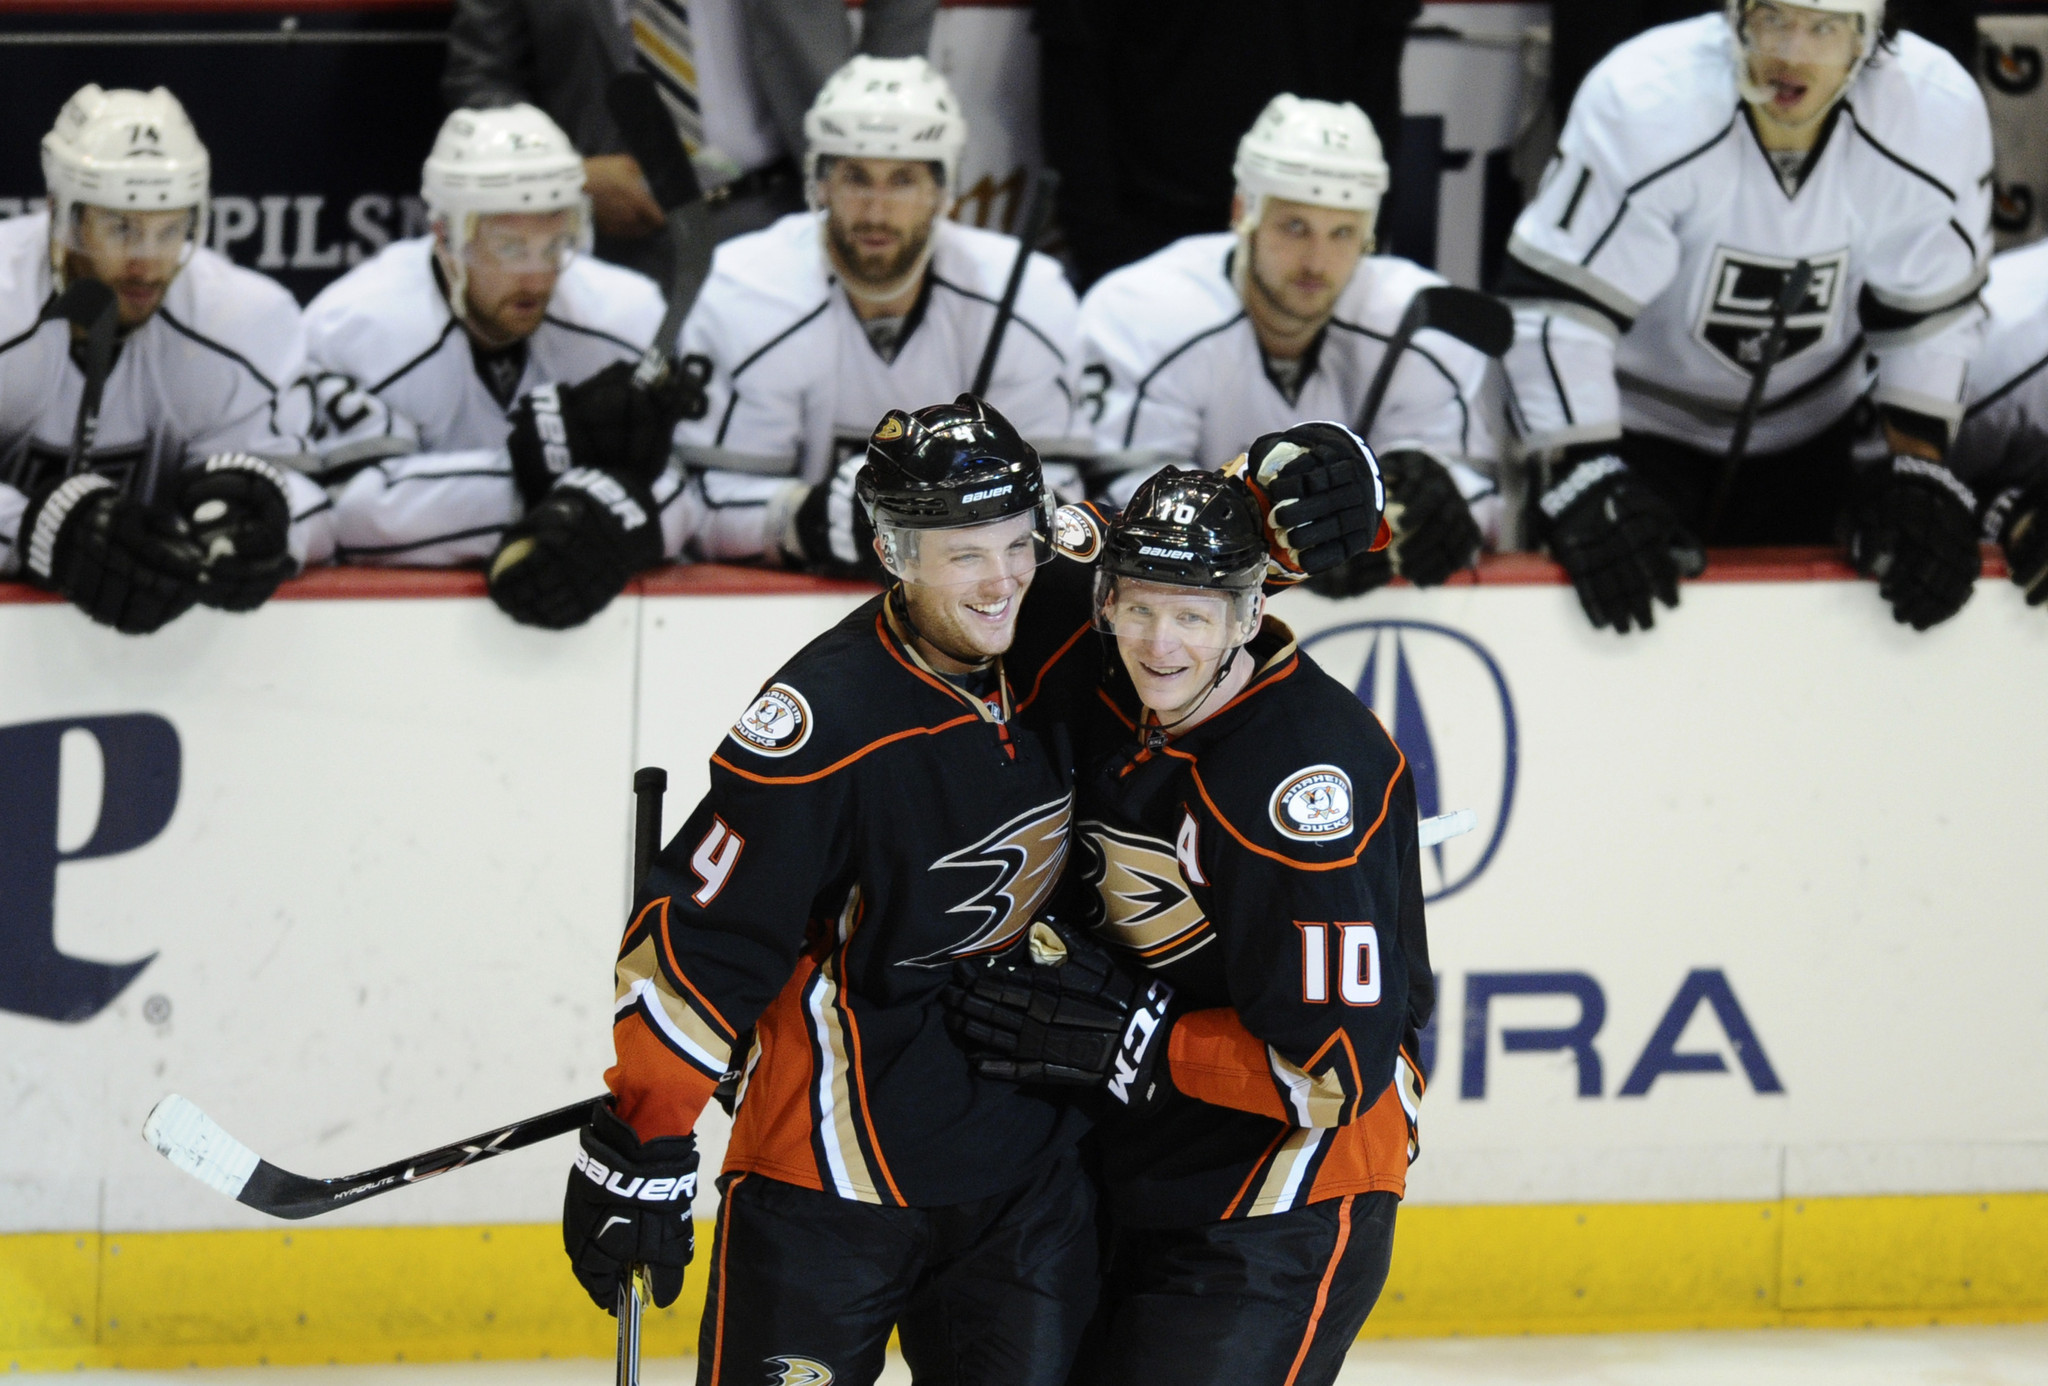 Ducks wipe out two-goal deficit in third period to beat Kings, 4-2